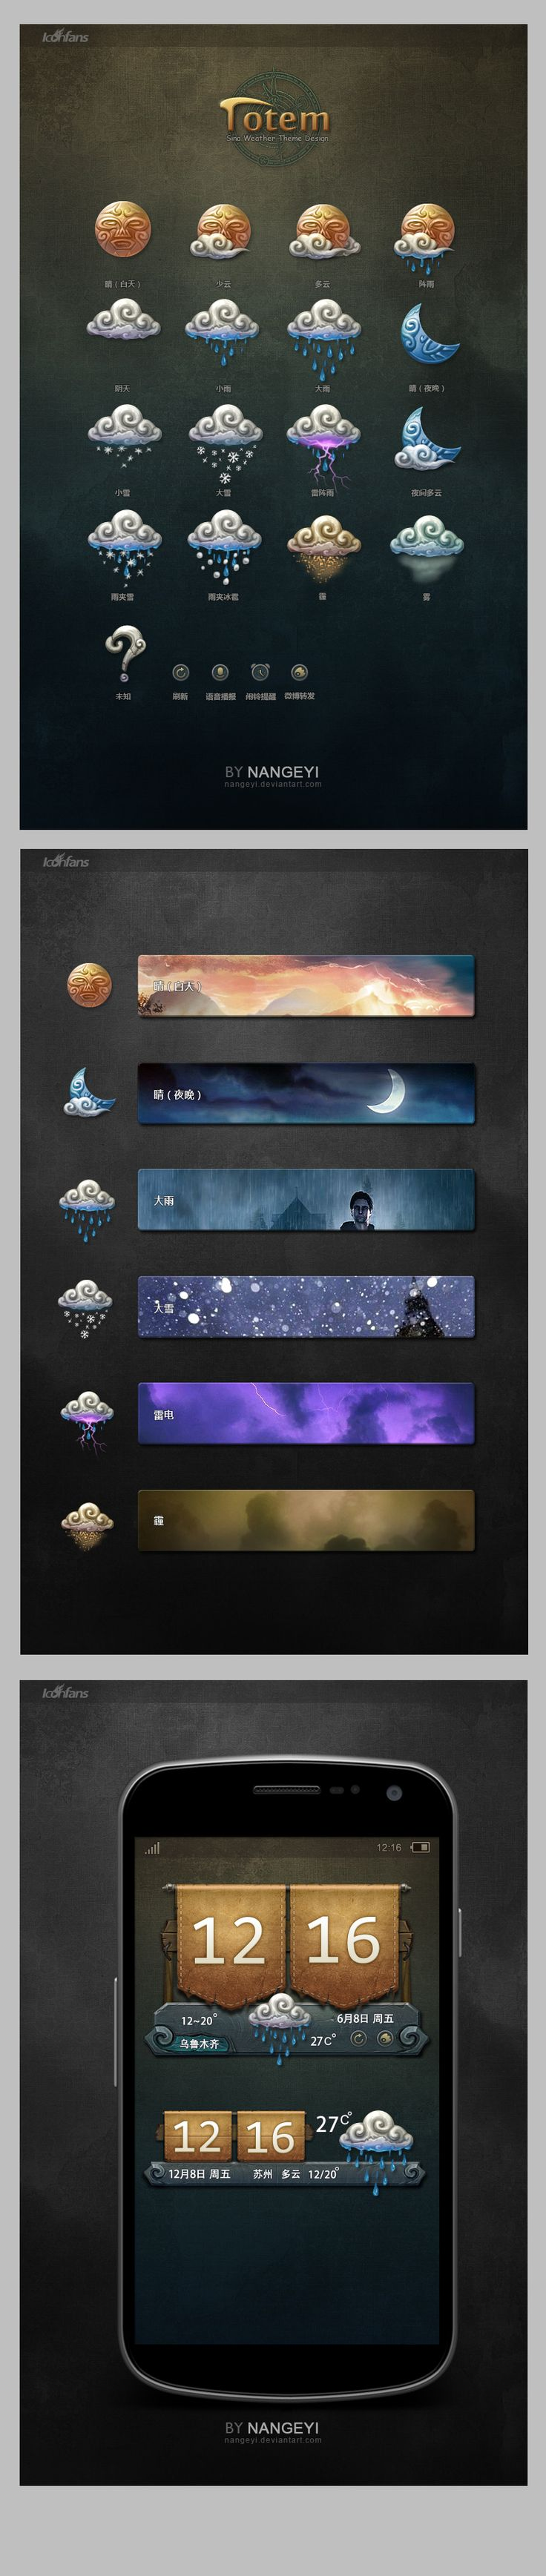 weather icons and wiget by nangeyi.deviantart.com on @deviantART